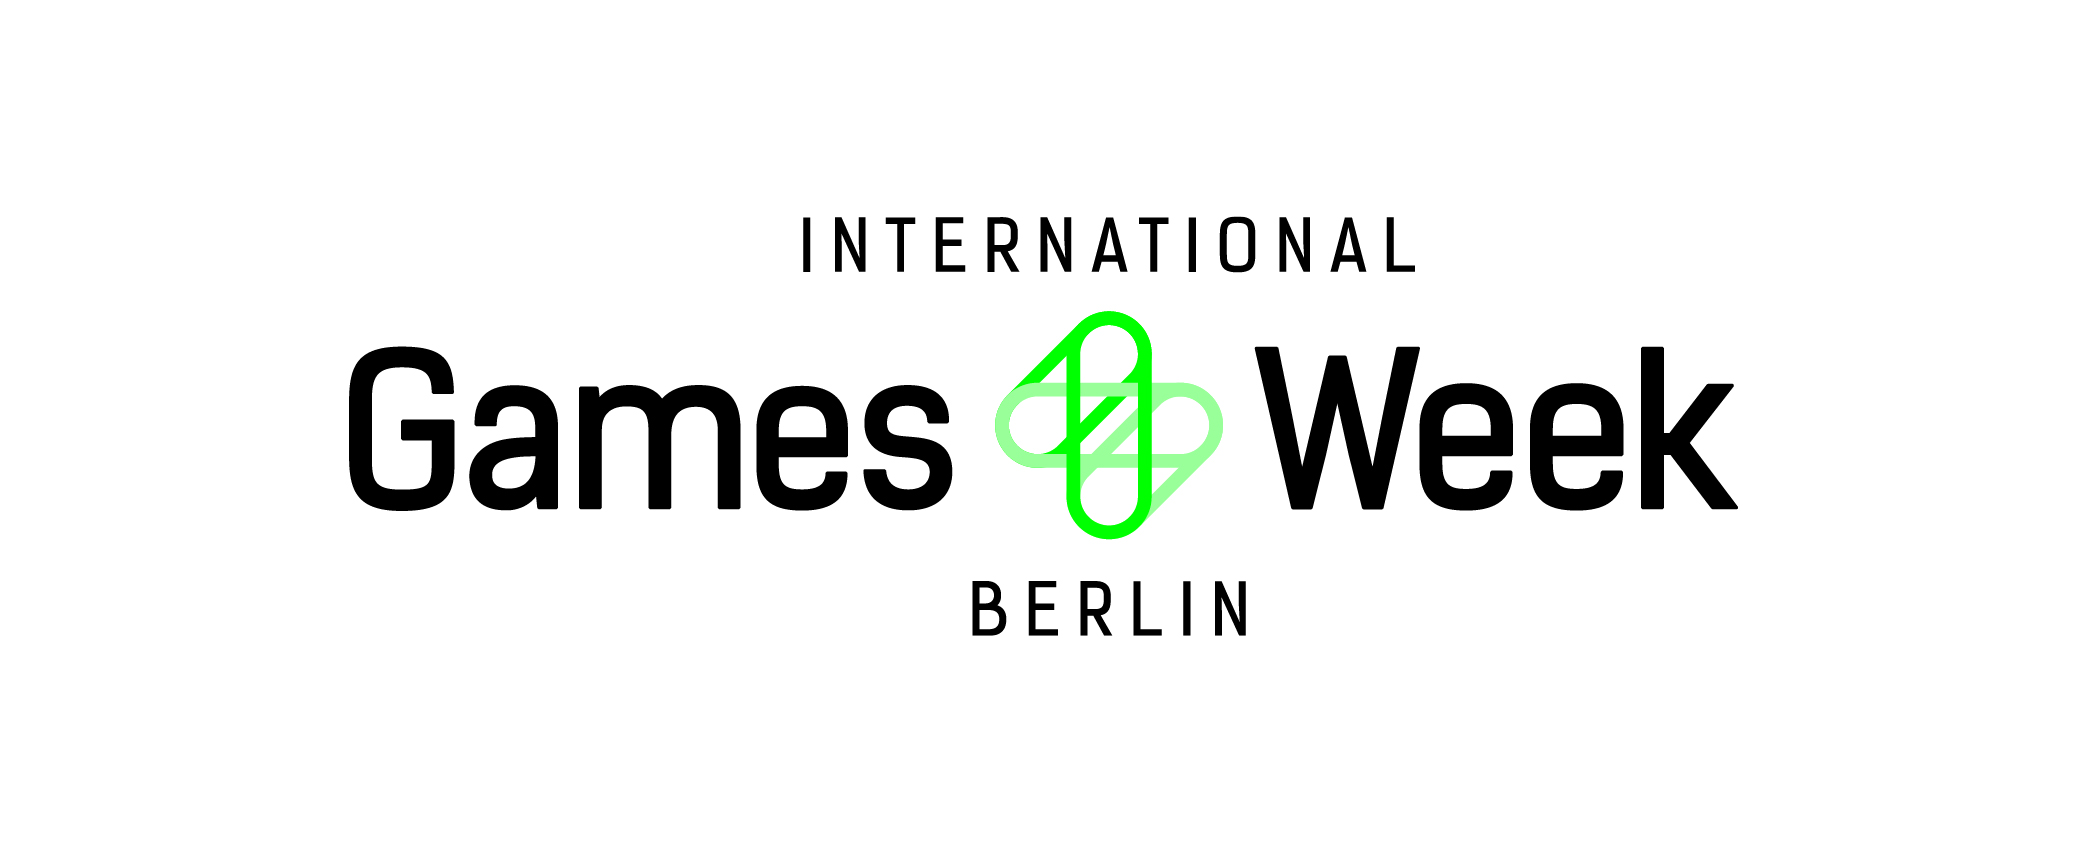 International Games Week Berlin